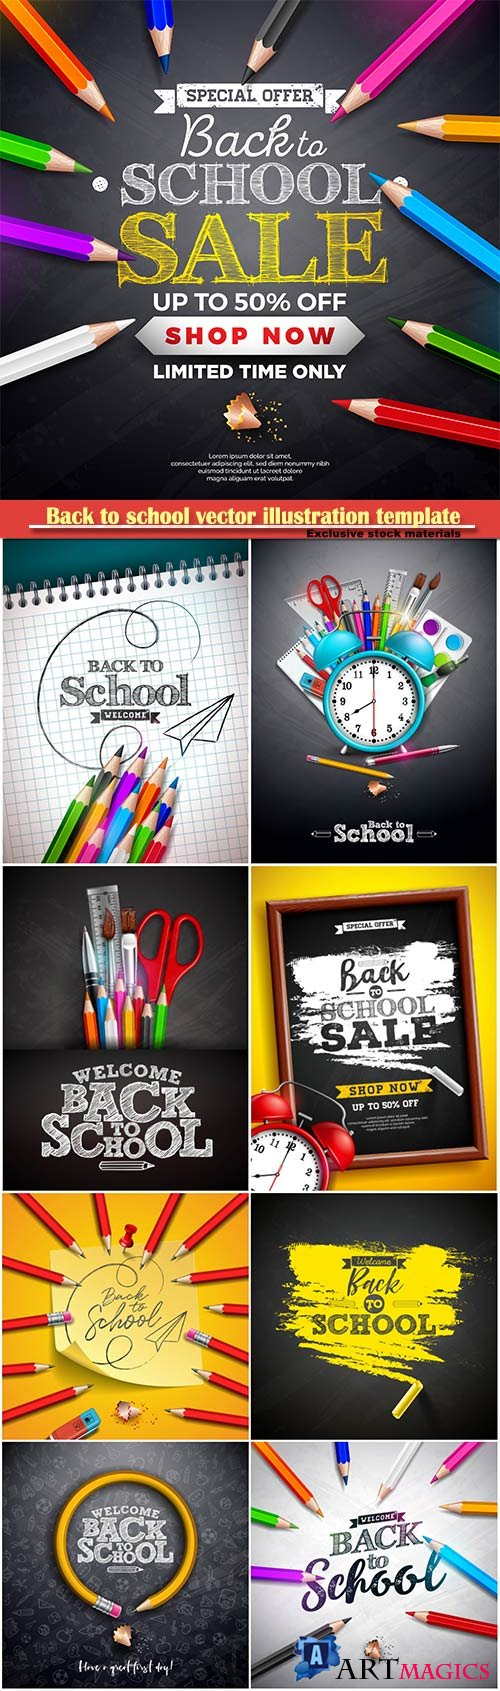 Back to school vector illustration template # 14